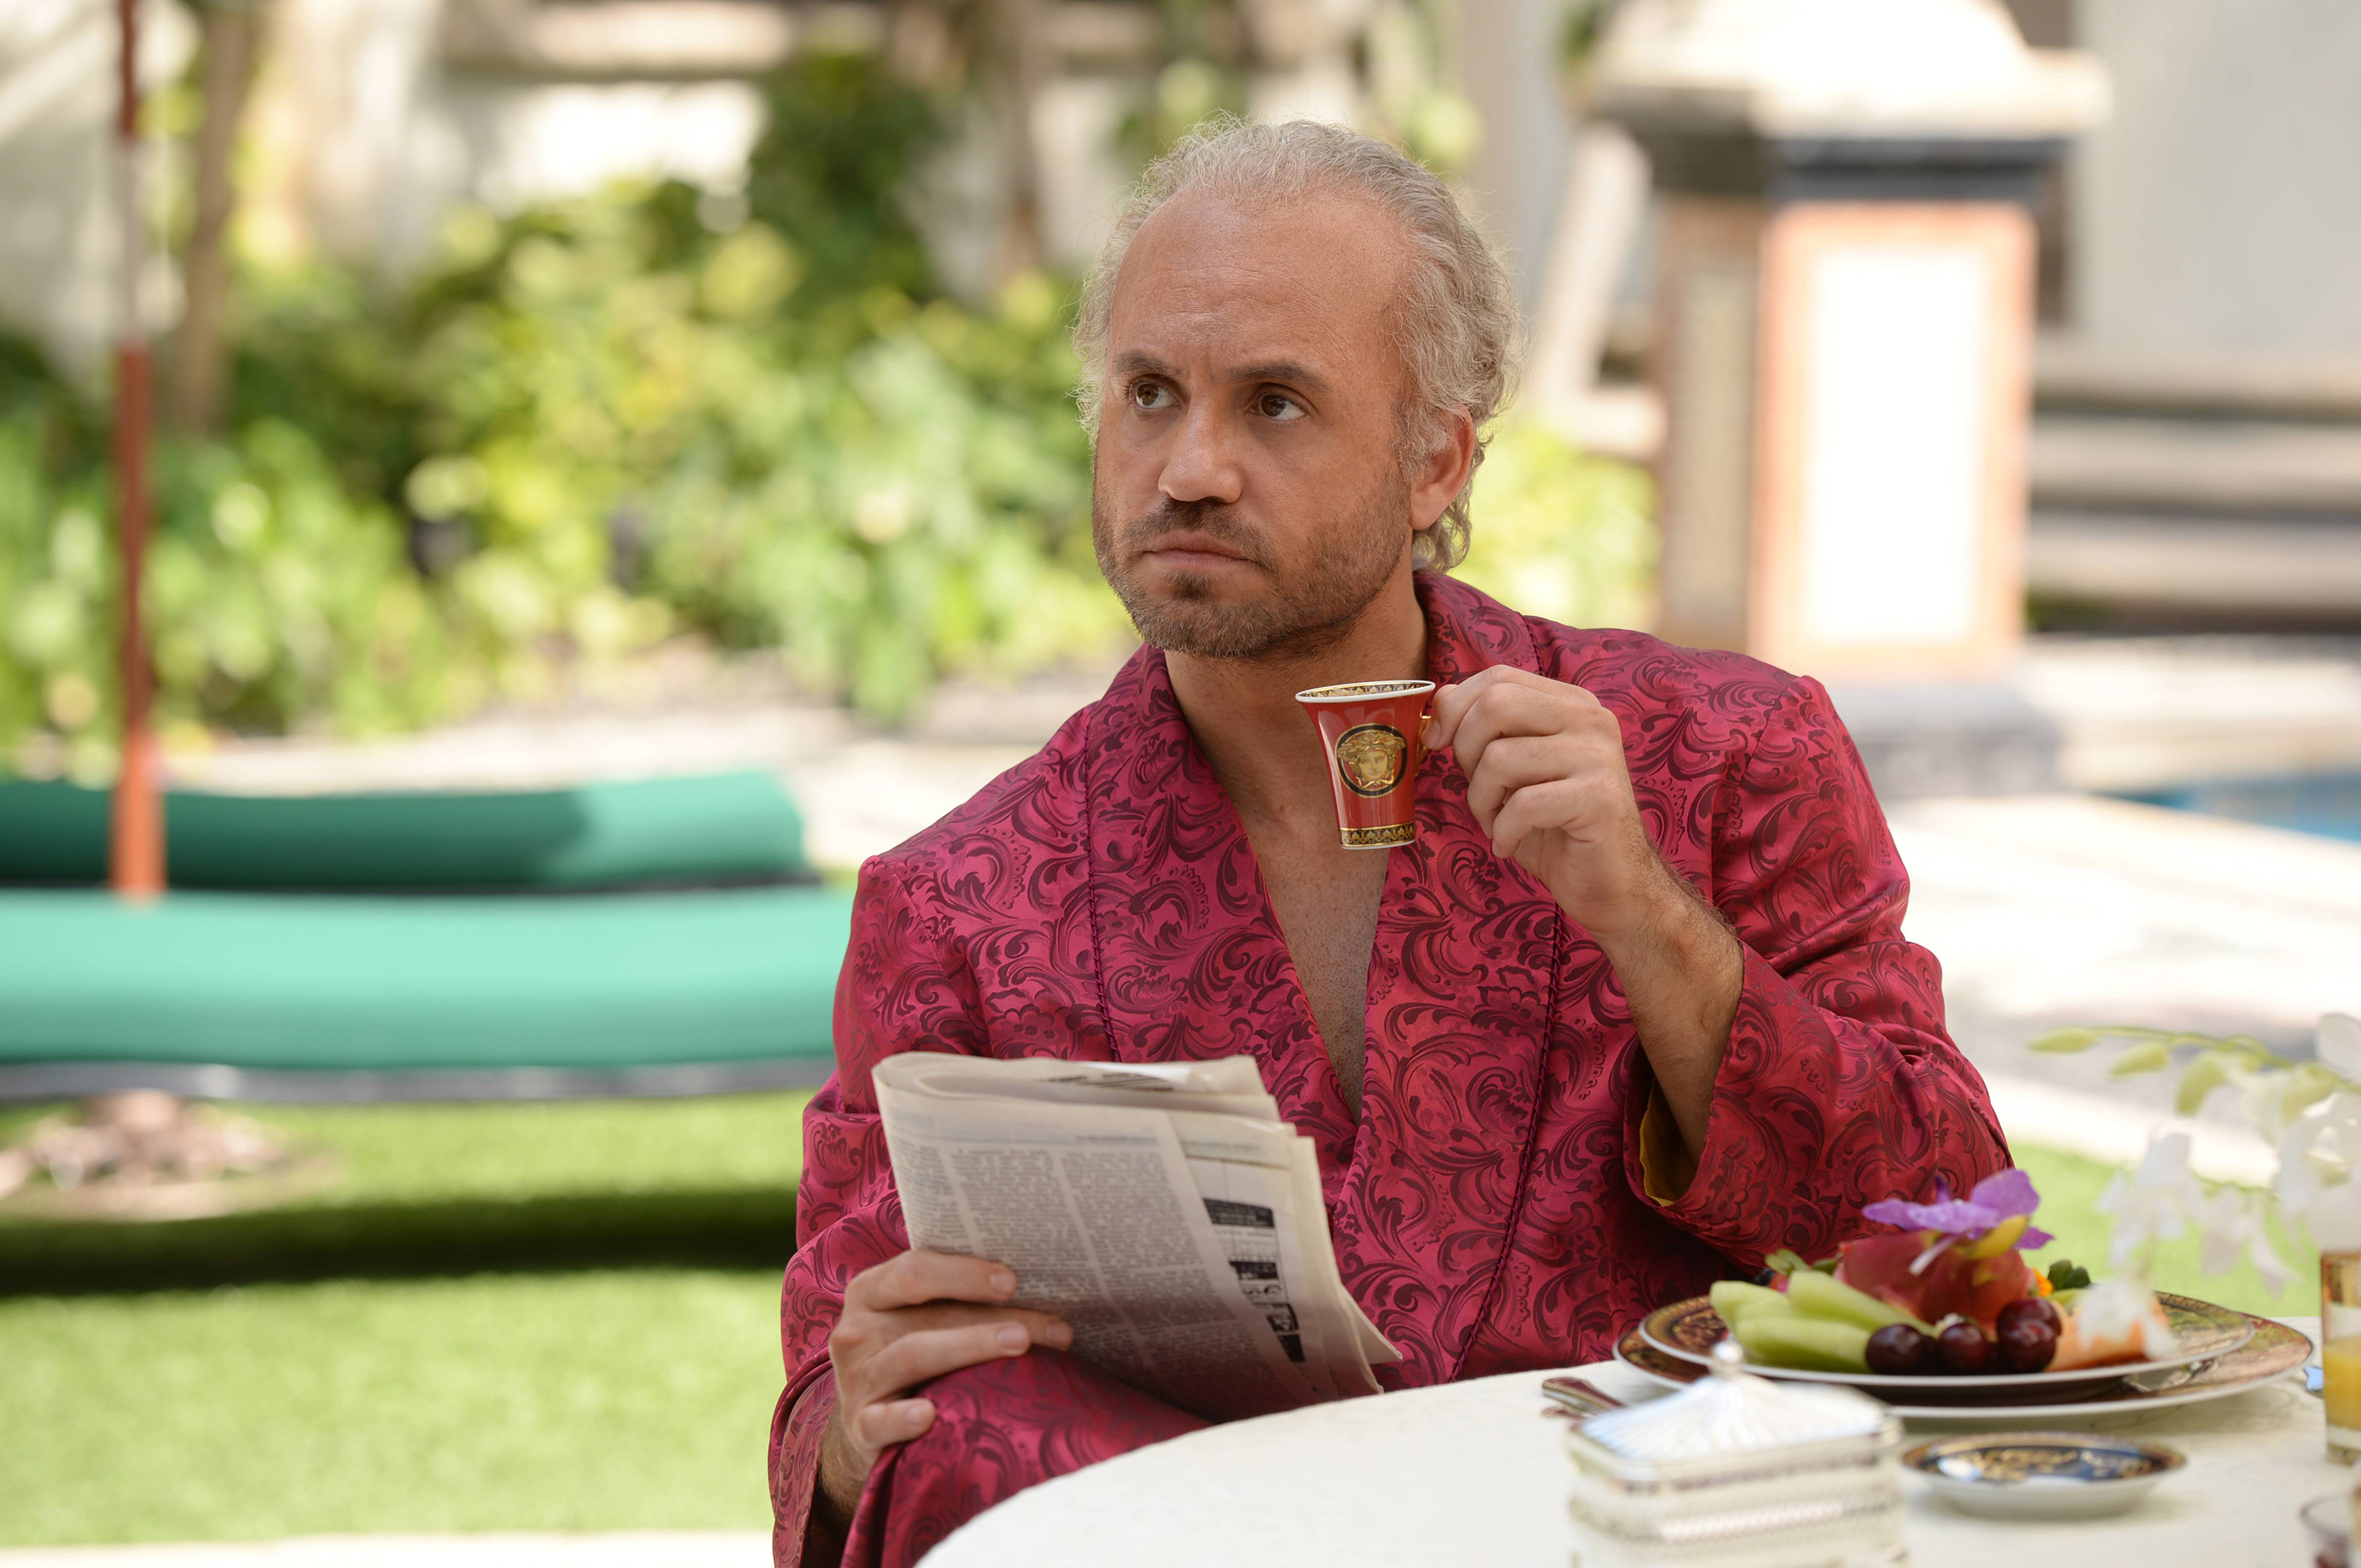 The Assassination of Gianni Versace: American Crime Story -- Pictured: Edgar Ramirez as Gianni Versace. CR: Jeff Daly/FX